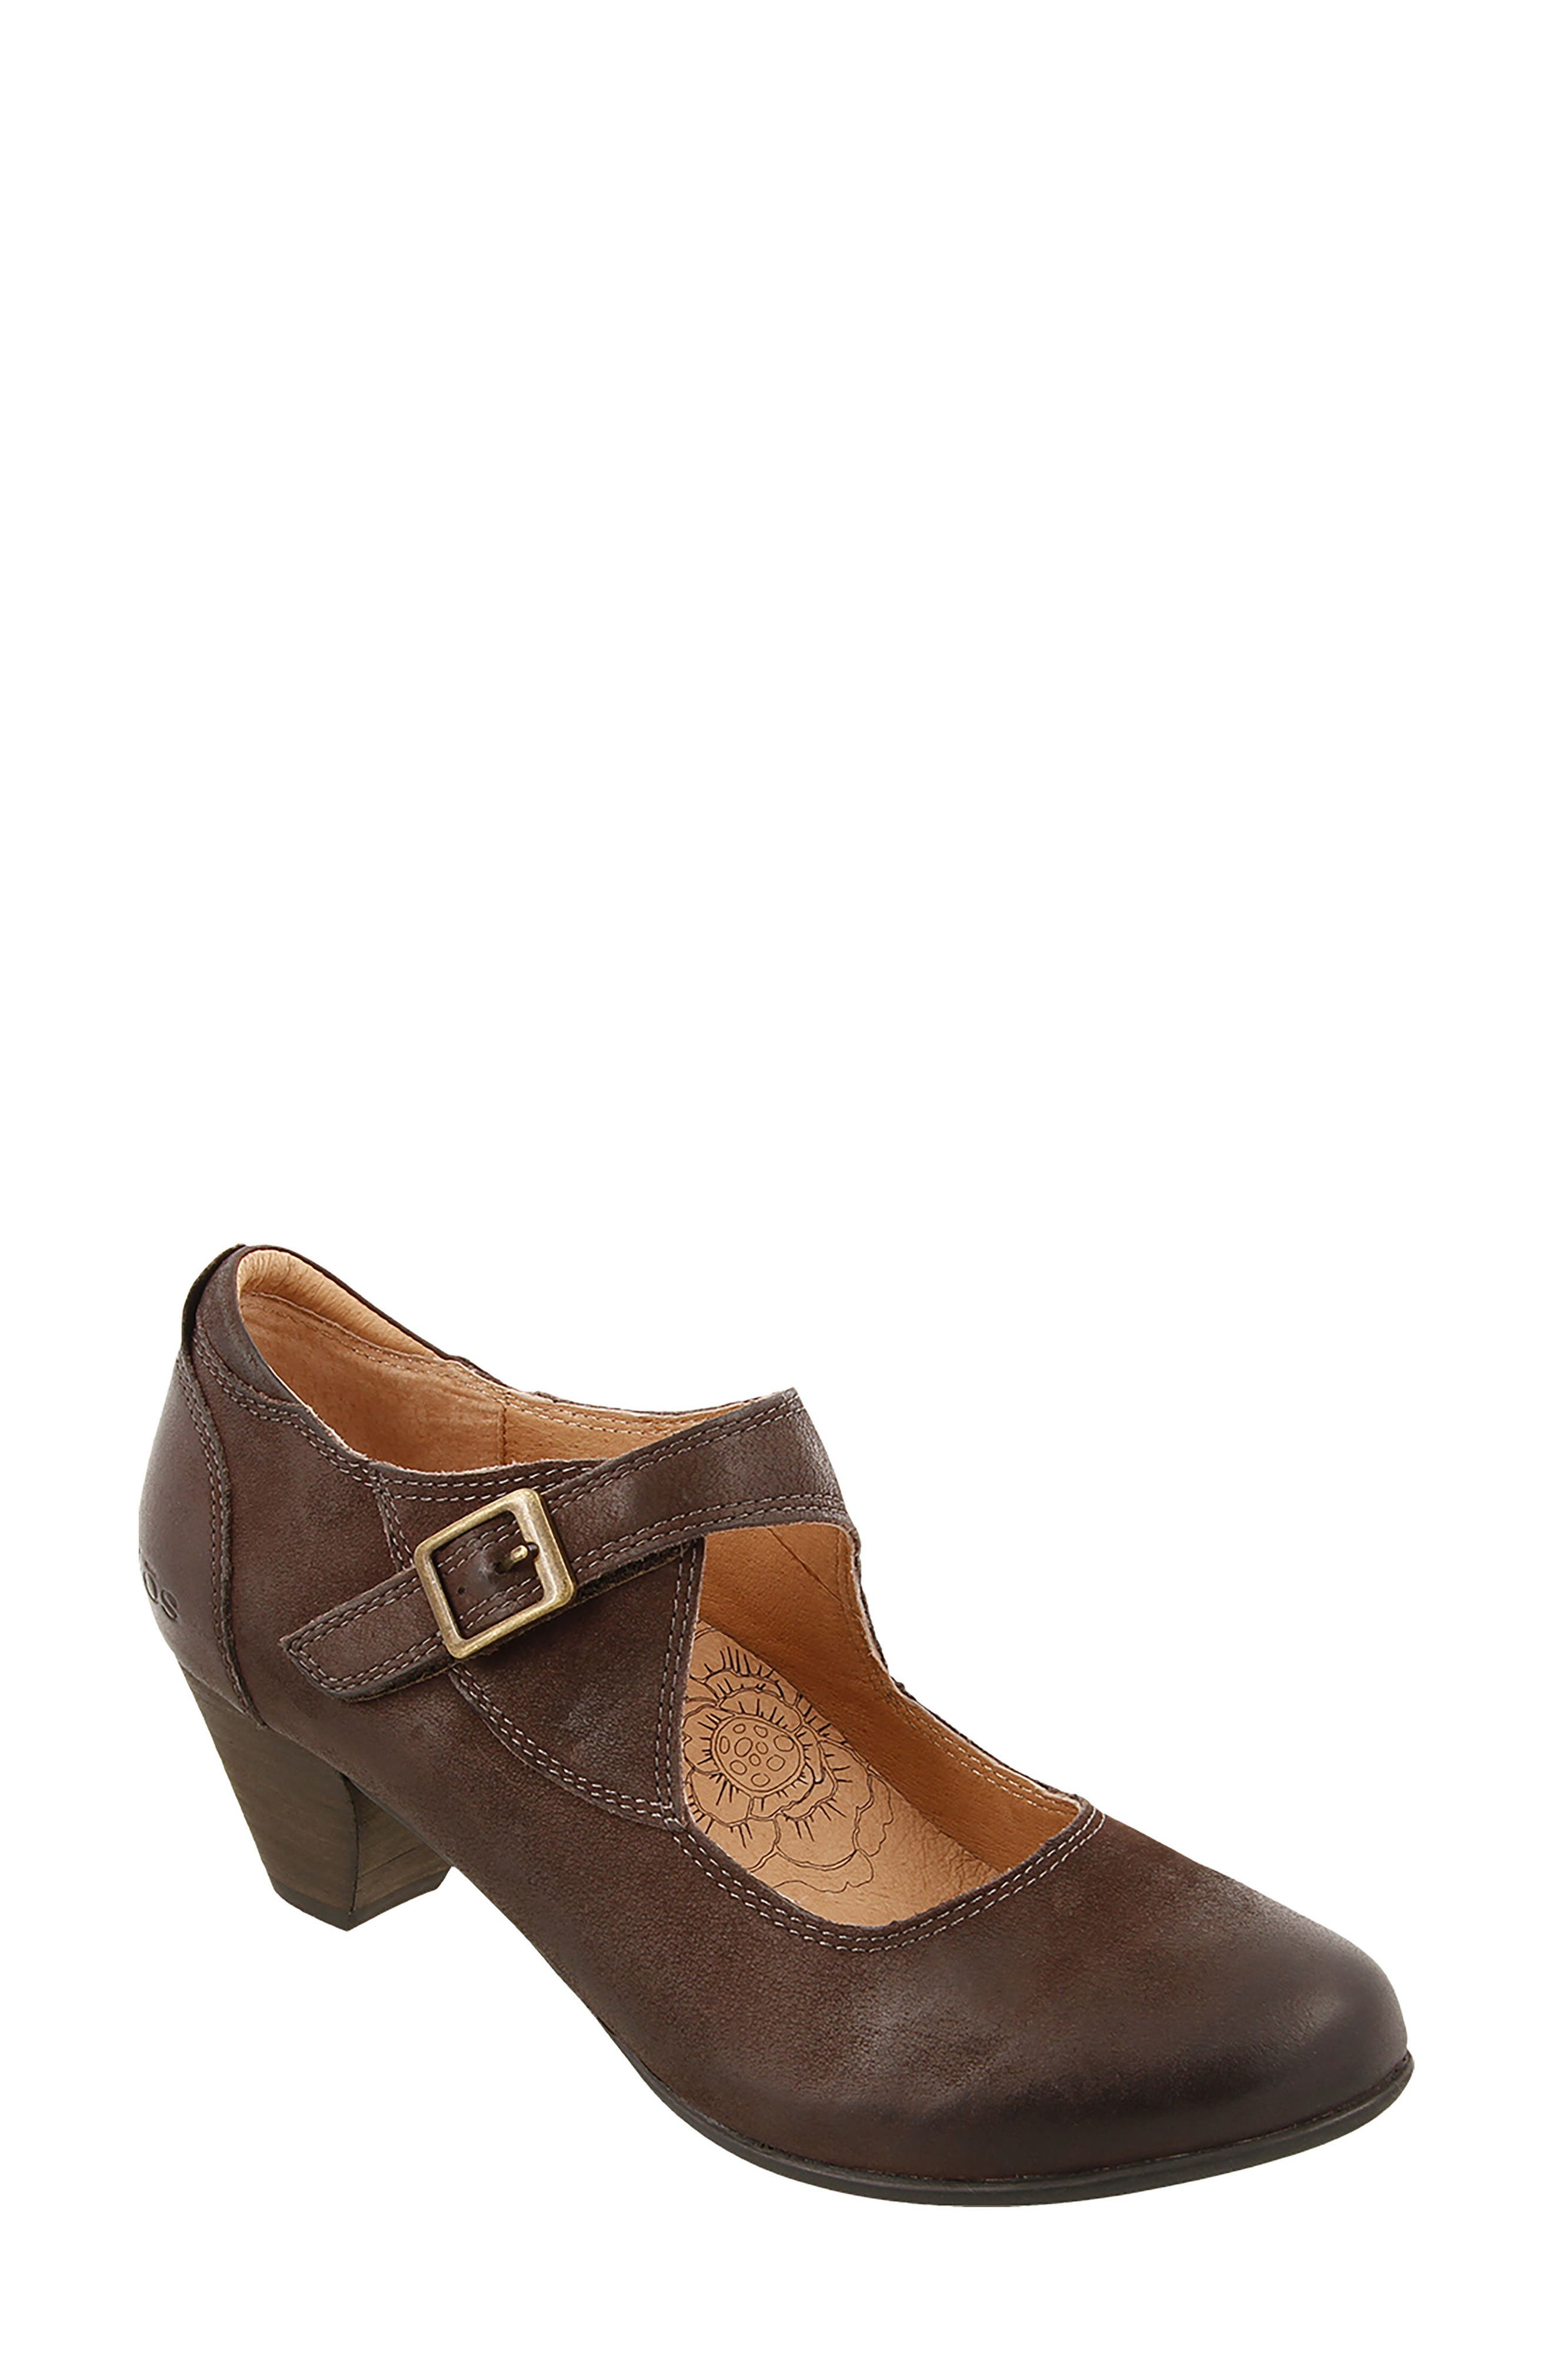 Studio Mary Jane Pump,                             Main thumbnail 1, color,                             Chocolate Oiled Leather